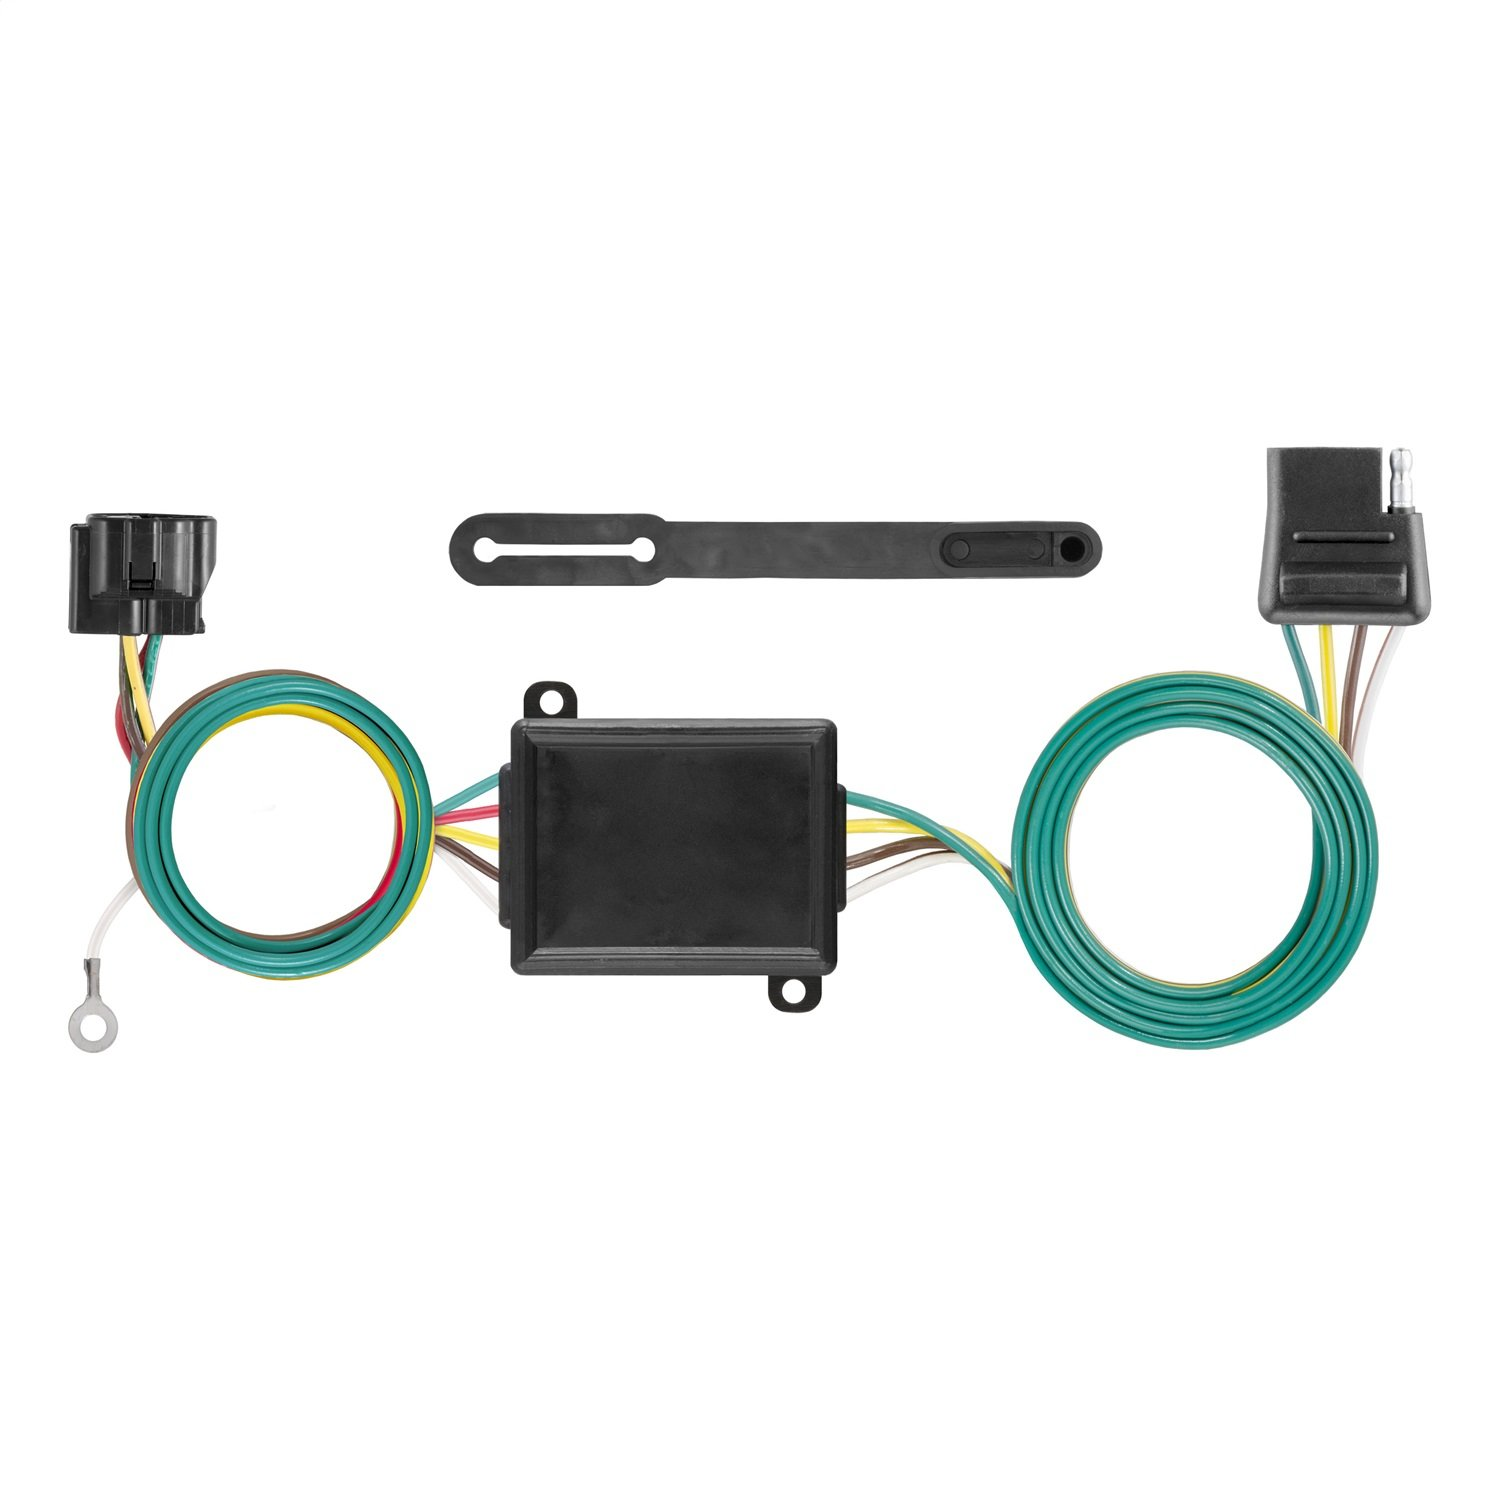 toad wiring harness understanding electrical drawingstow vehicle wiring harness wiring diagram databaseamazon com curt manufacturing 58919 custom vehicle rv wiring gps